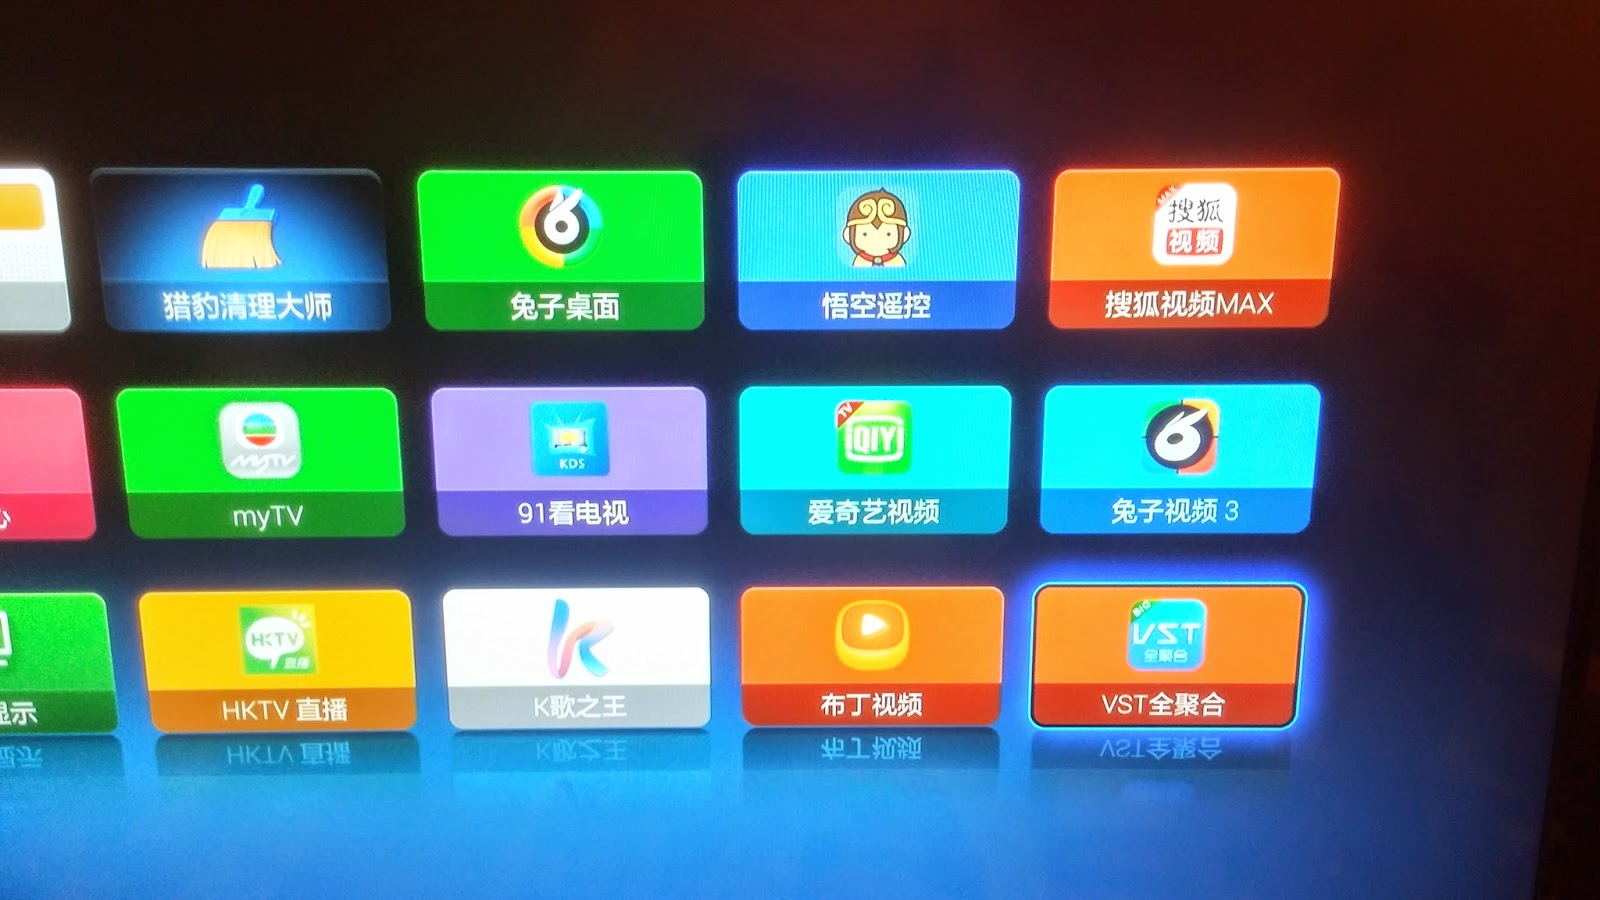 {Android/IOS/TV Box}小米盒子 流暢必裝APPs + 手機多功能搖控 !! 不用Root - SmartPhone User 手機用家